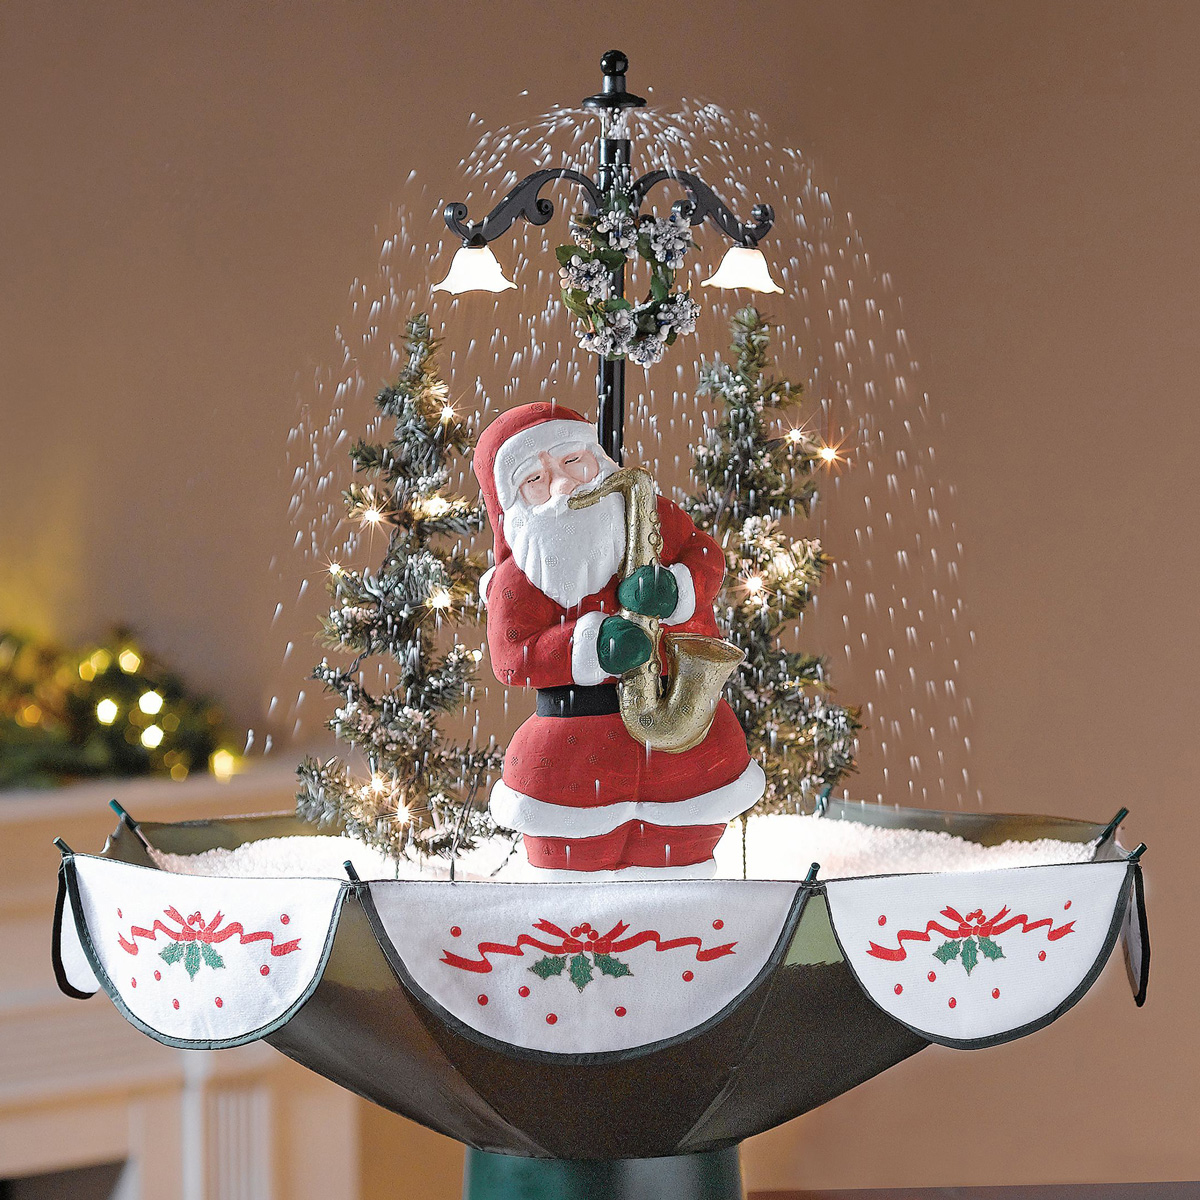 Falling Snow Wallpaper Software Tabletop Snowing Christmas Tree The Green Head